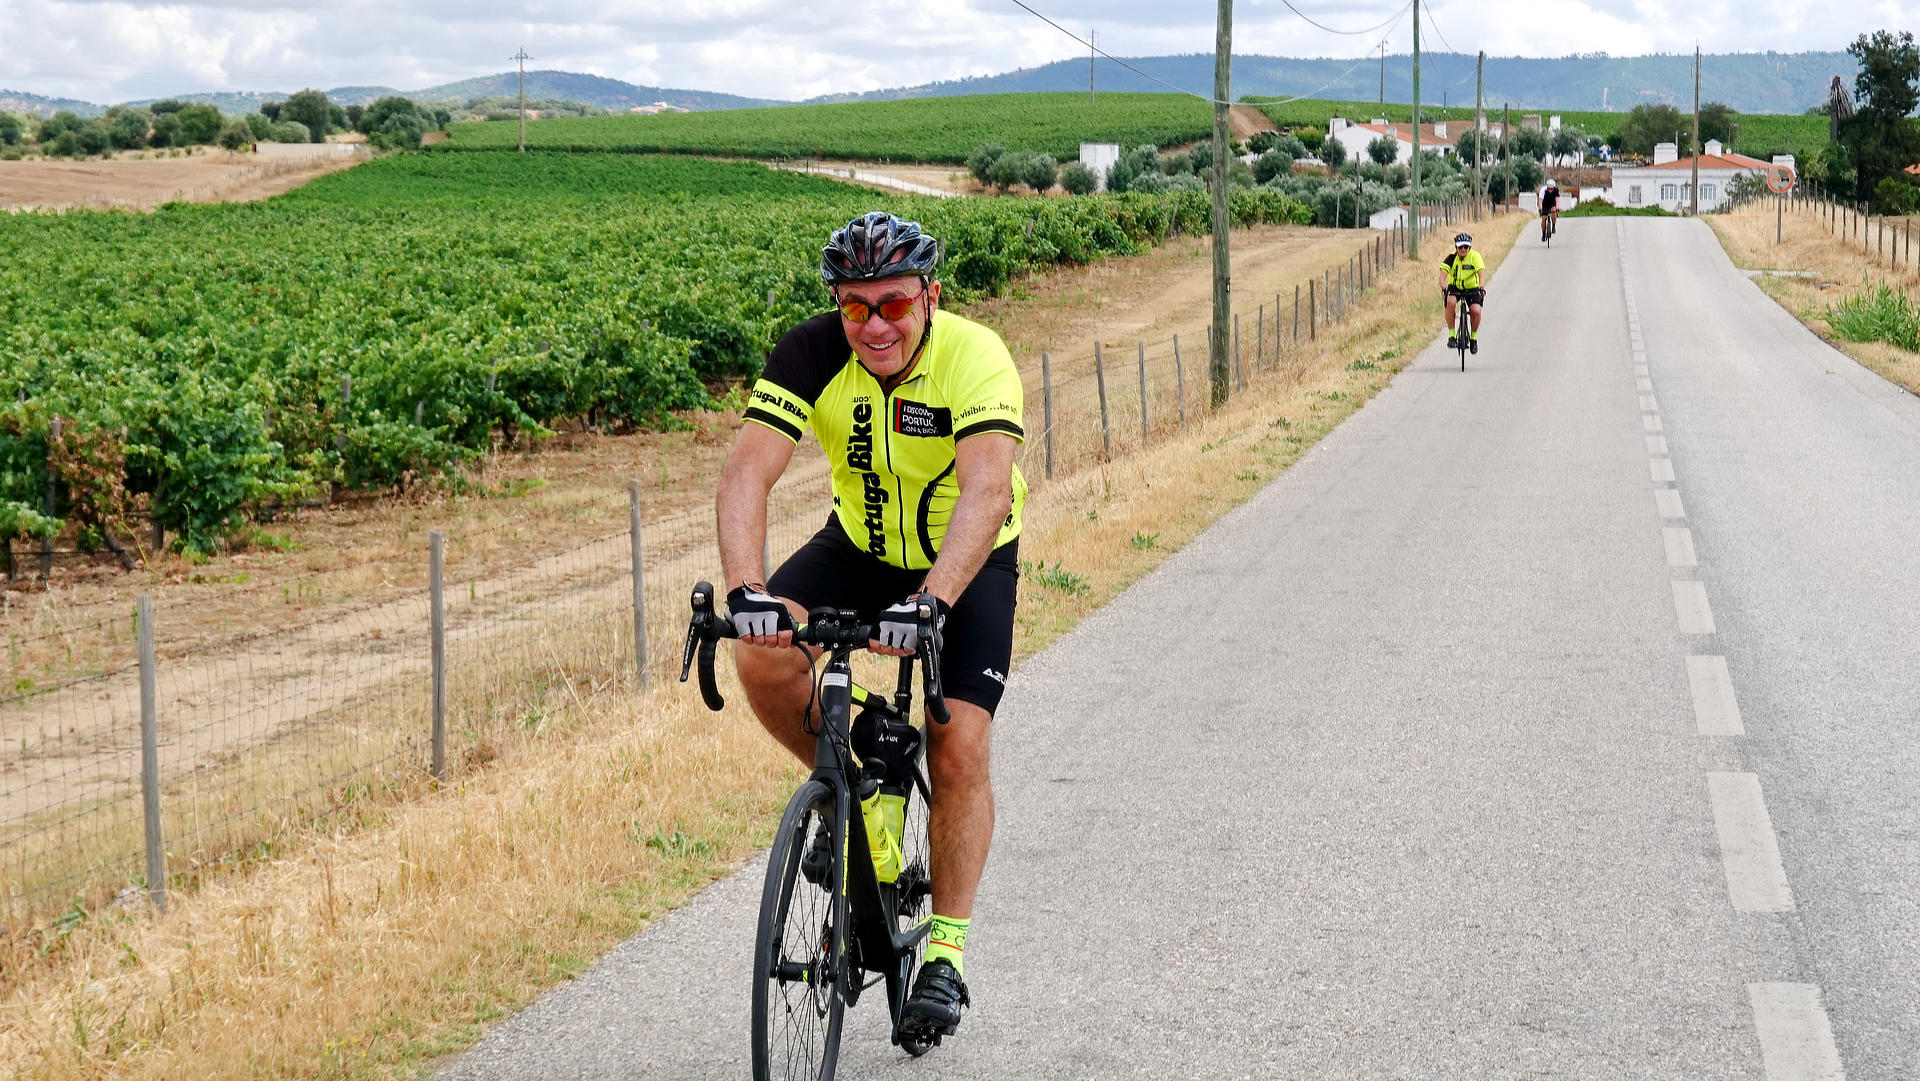 Cycling the Alentejo Wine Region vineyards Open Views